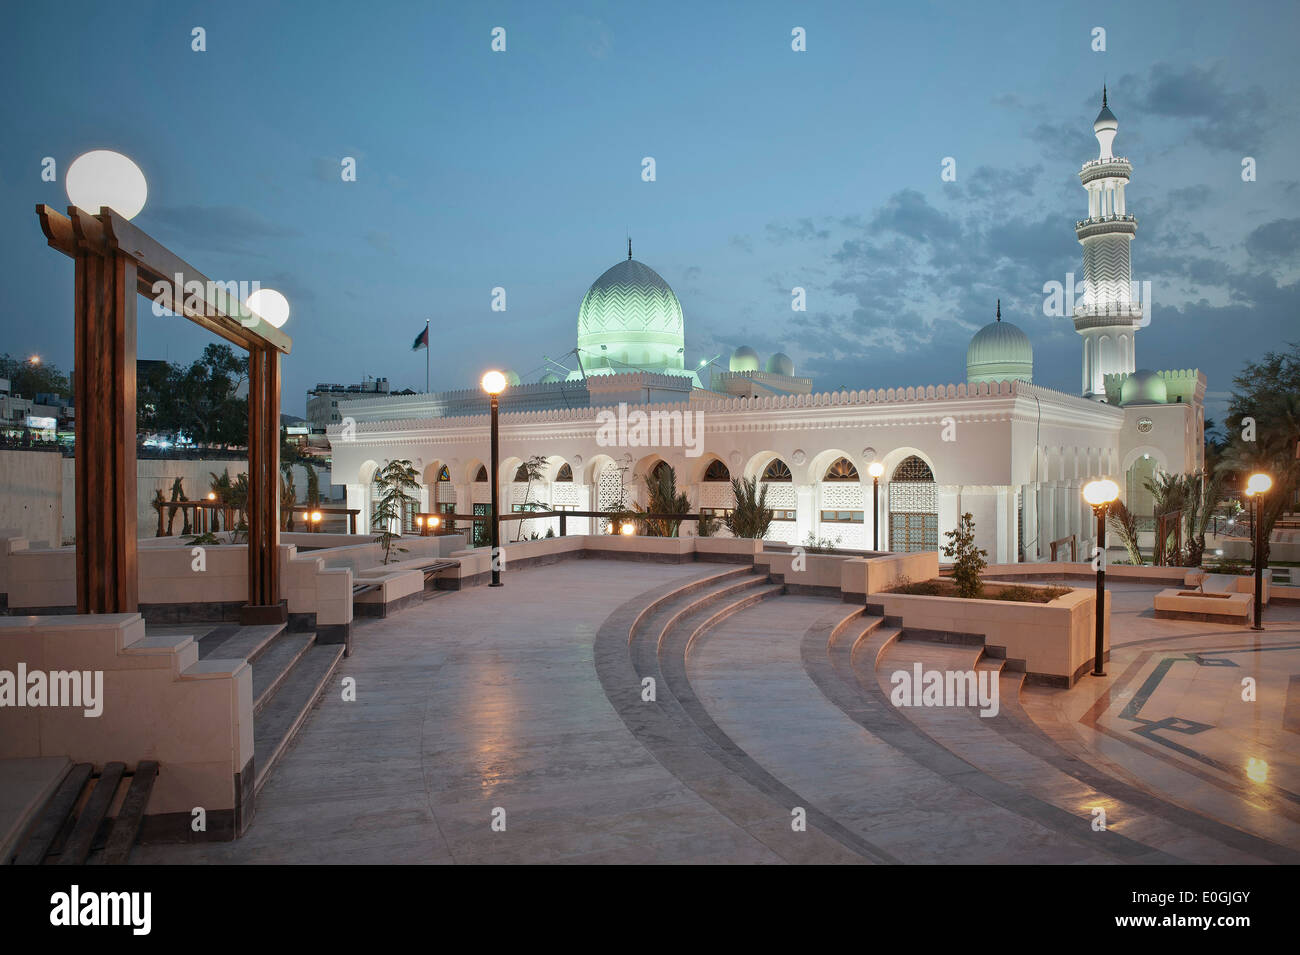 Illuminated Al Sharif Al Hussein bin Ali Mosque at night, Gulf of Aqaba, Red Sea, Jordan, Middle East, Asia - Stock Image